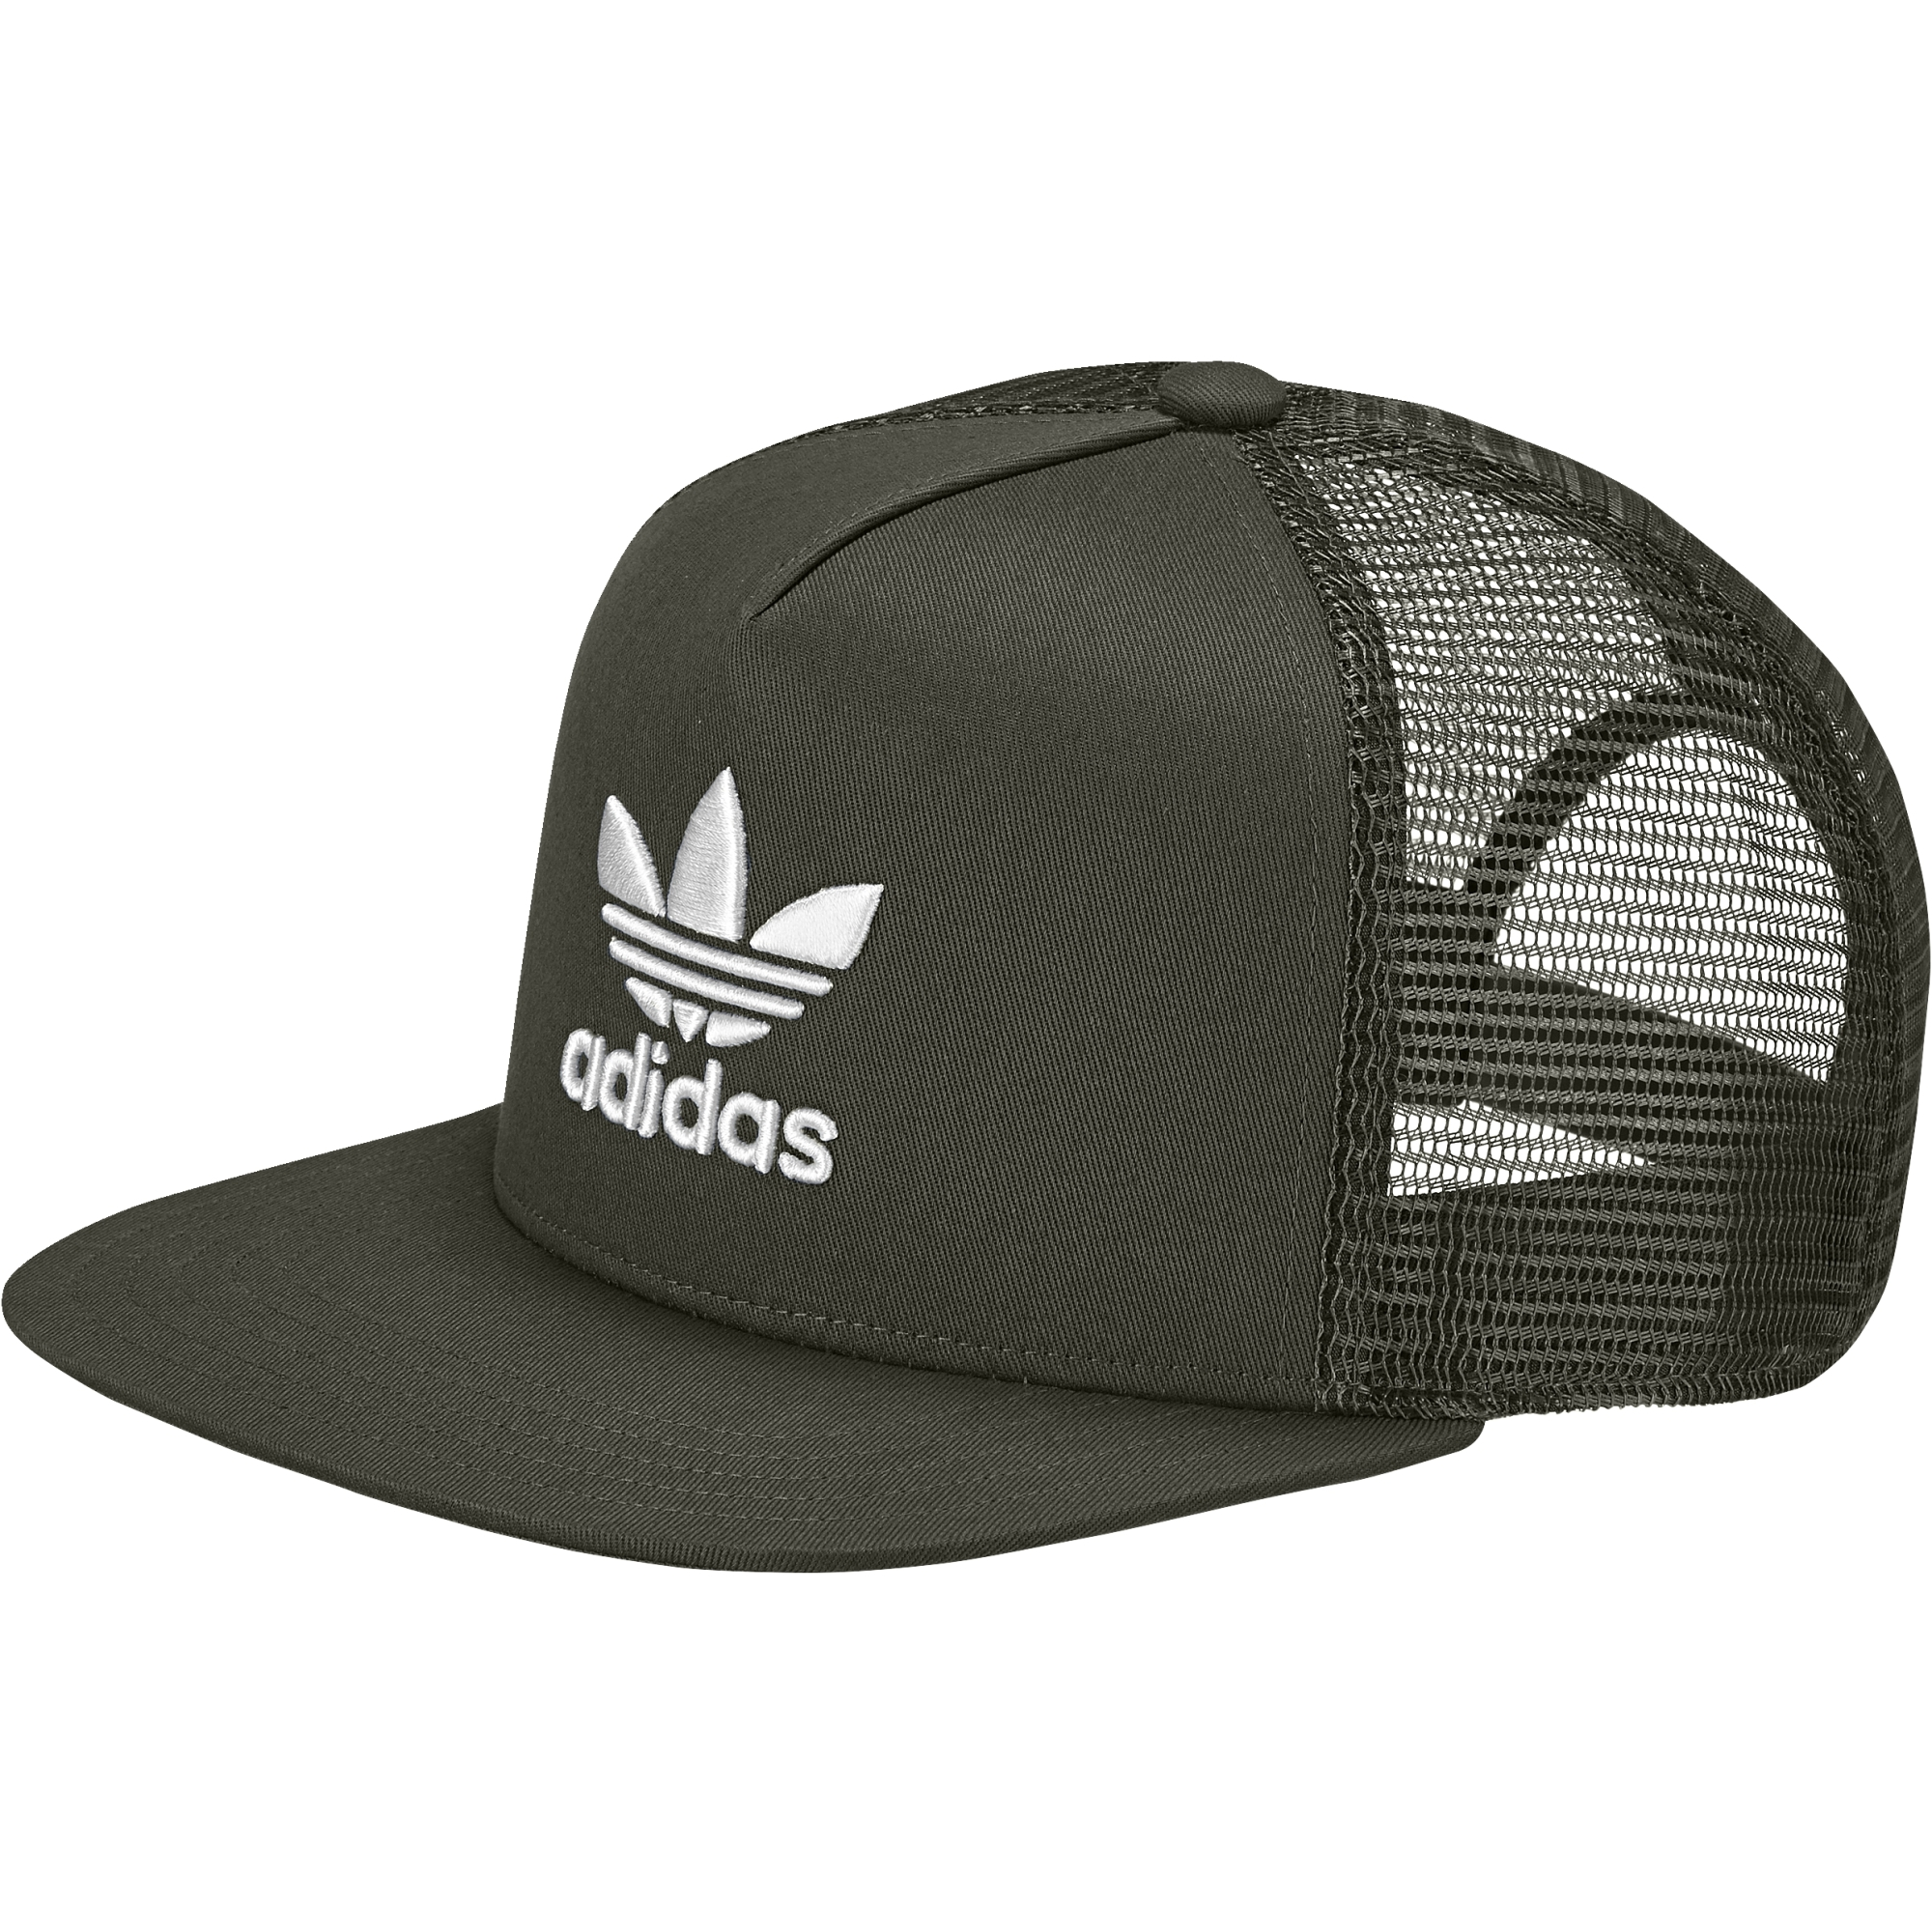 Adidas Trefoil Trucker Cap Night Cargo   White - Boardvillage 2f5da0758a5